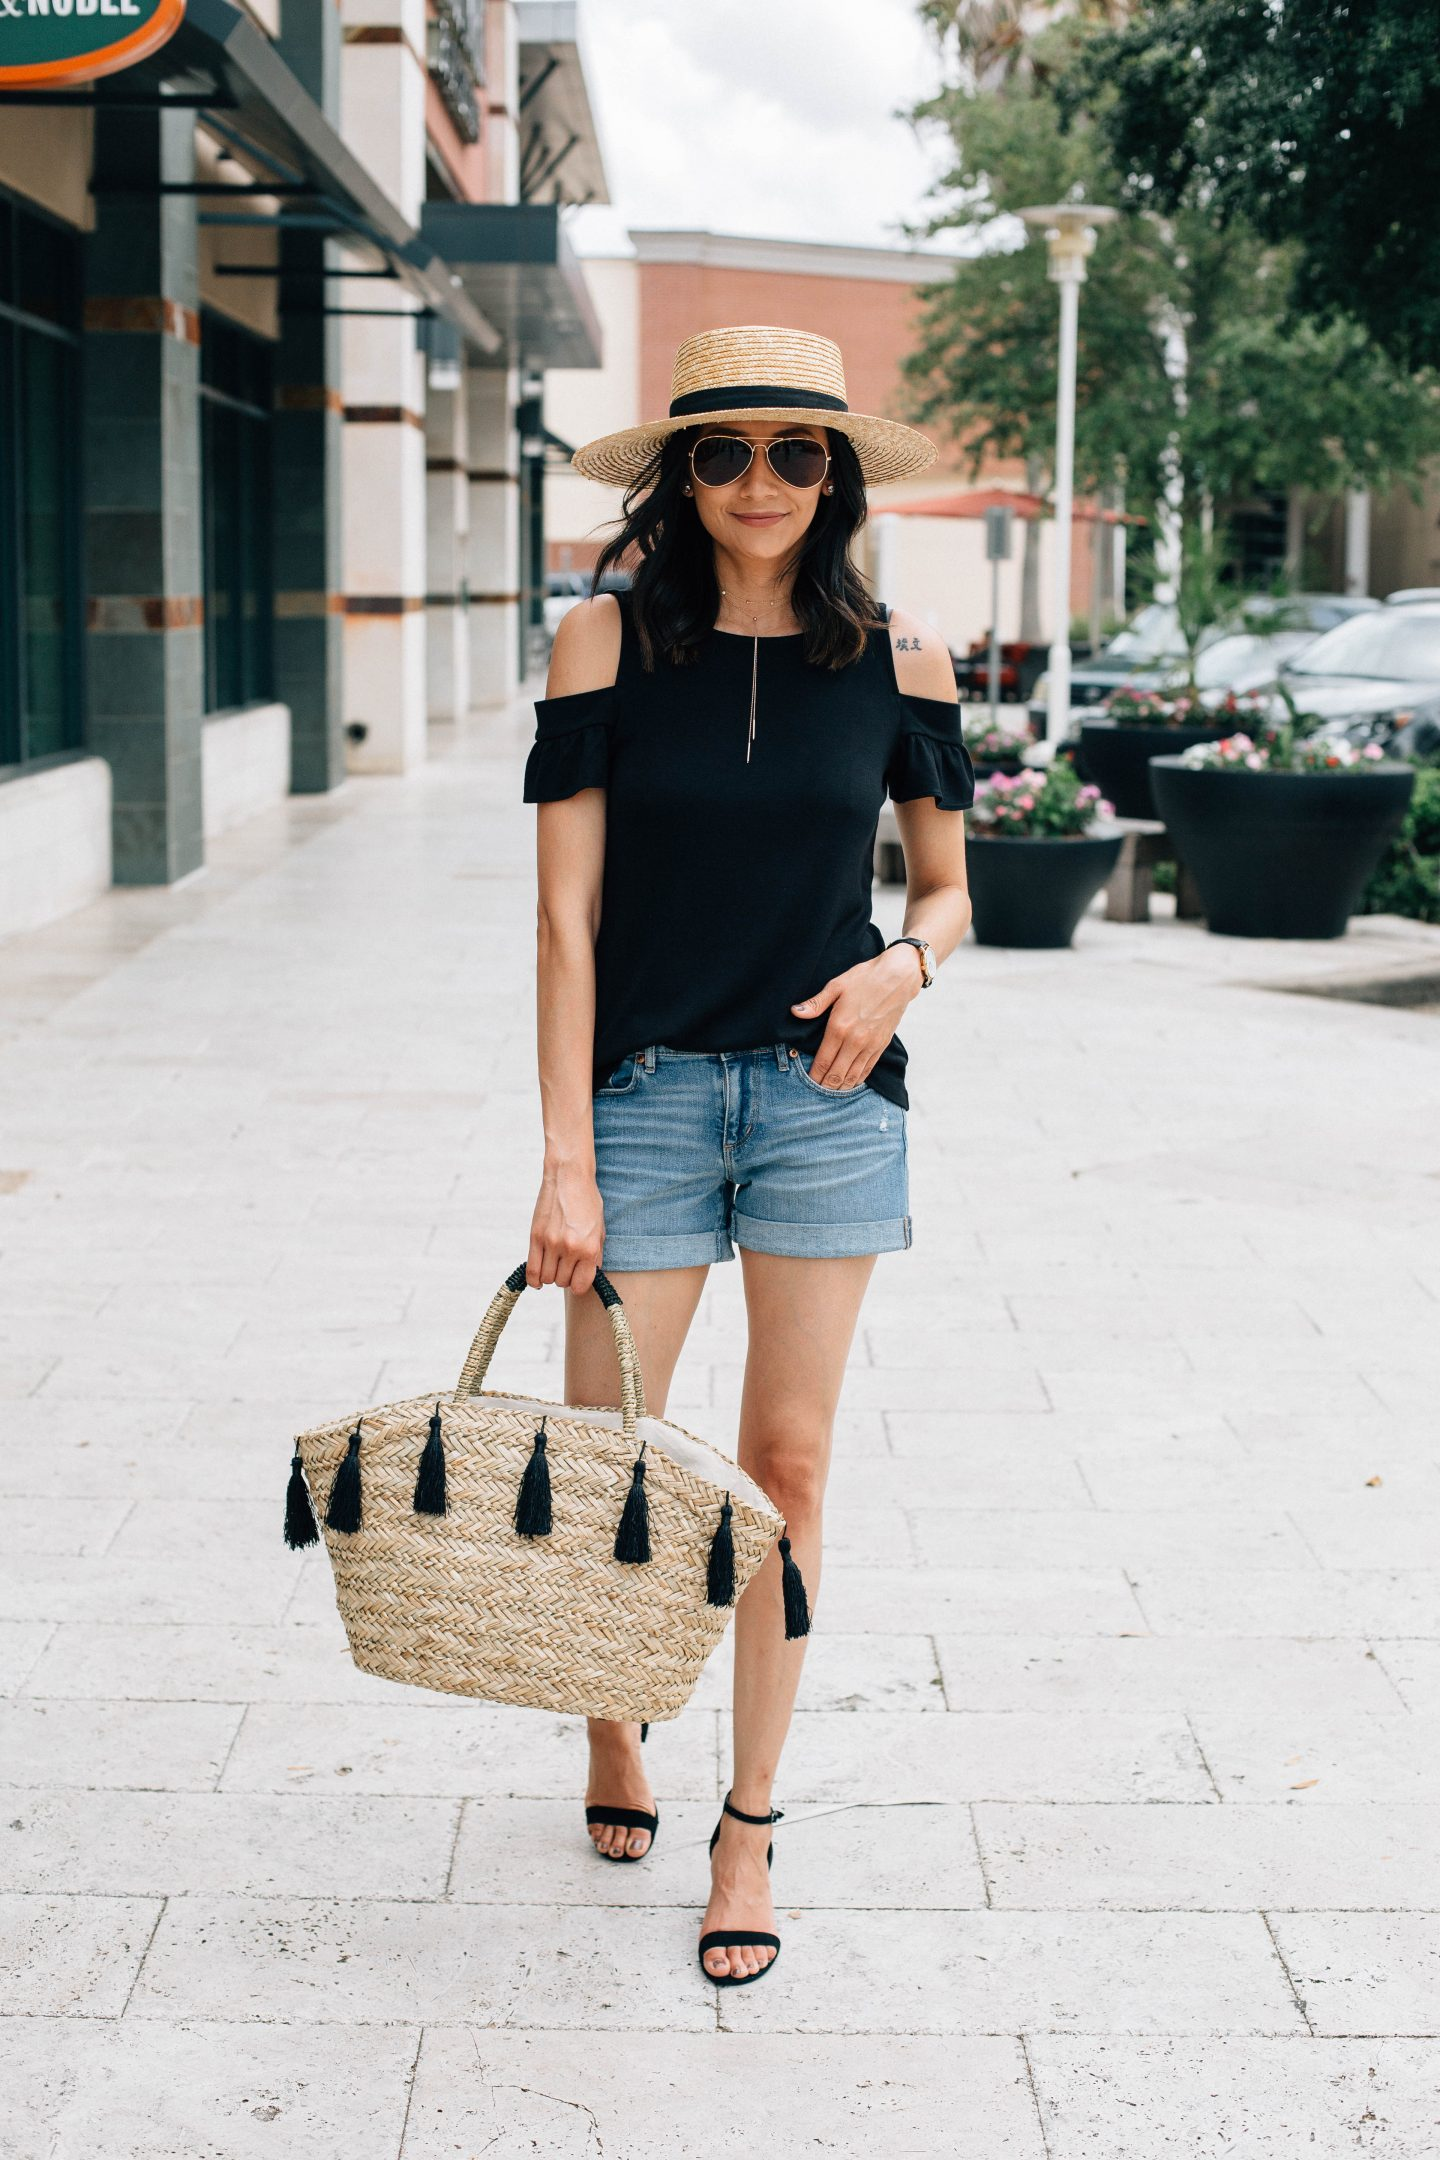 A Cute Summer Outfit To Wear Now